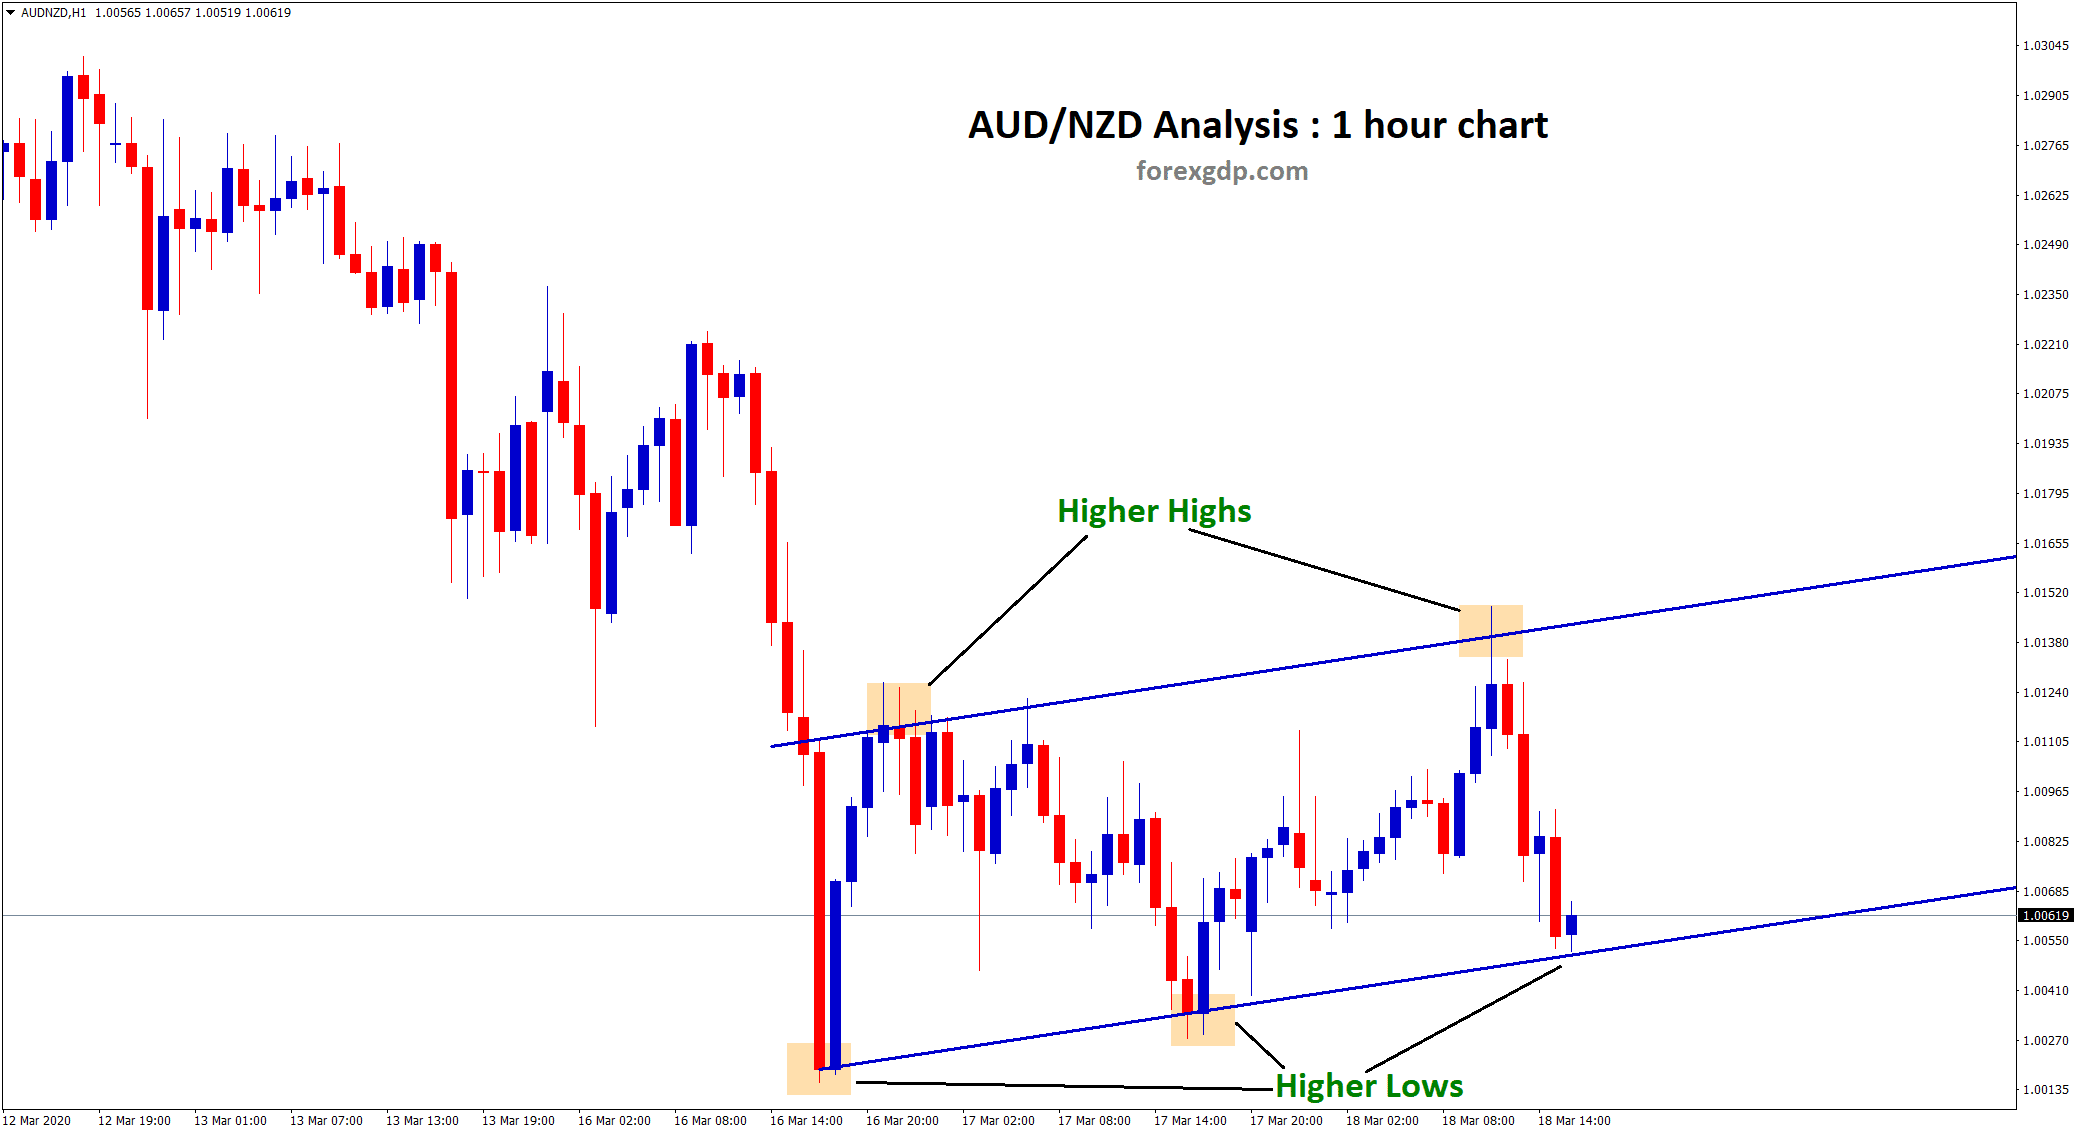 aud nzd starts to move in an uptrend